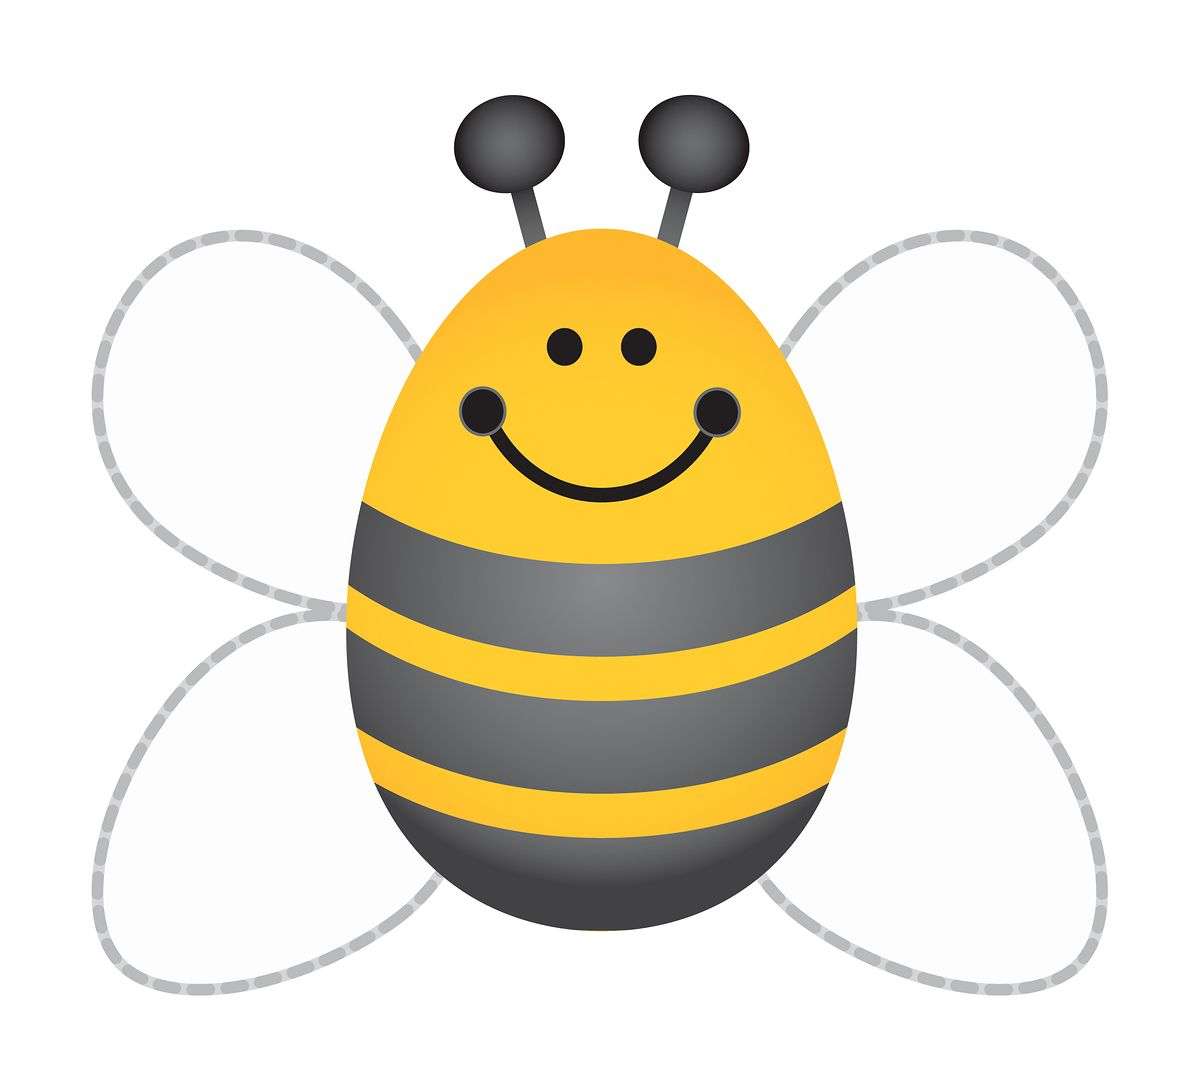 Craft bumble bee - Bumblebee Template Clipart Best